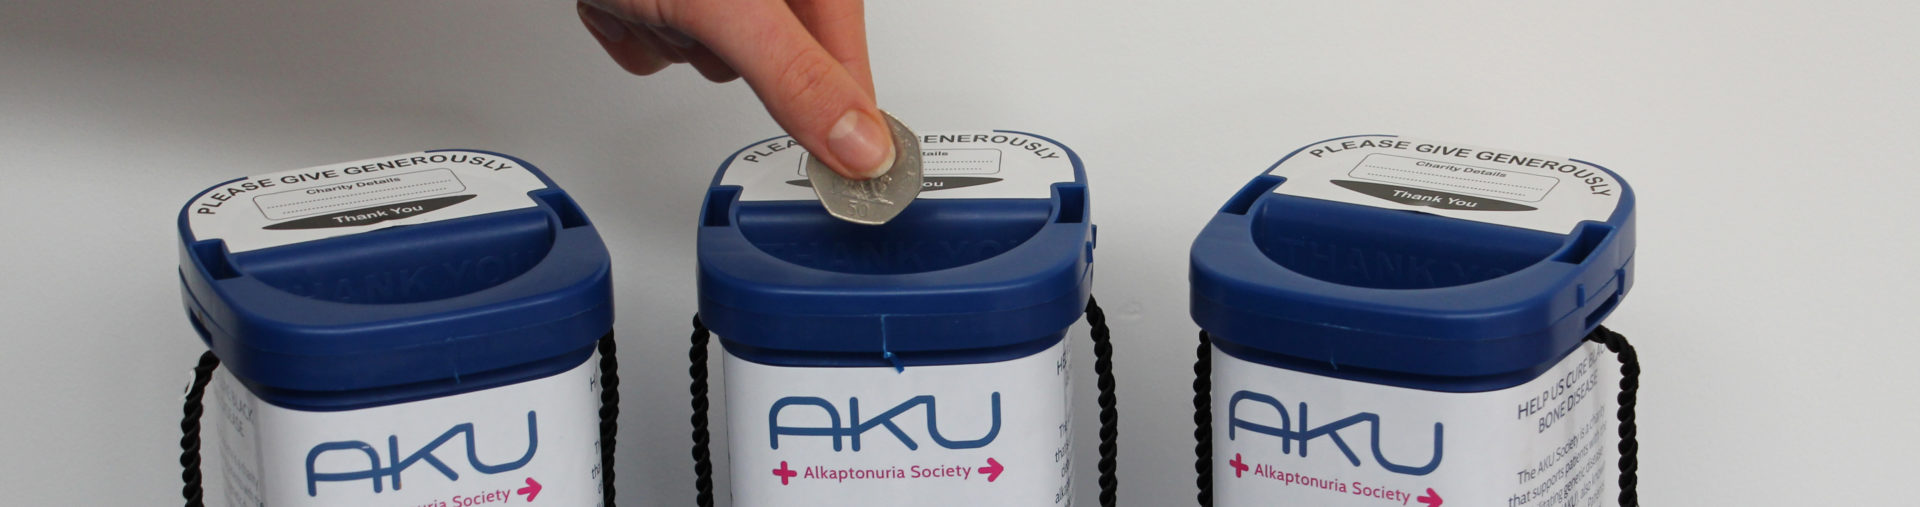 money being donated to the aku society charity blue pot